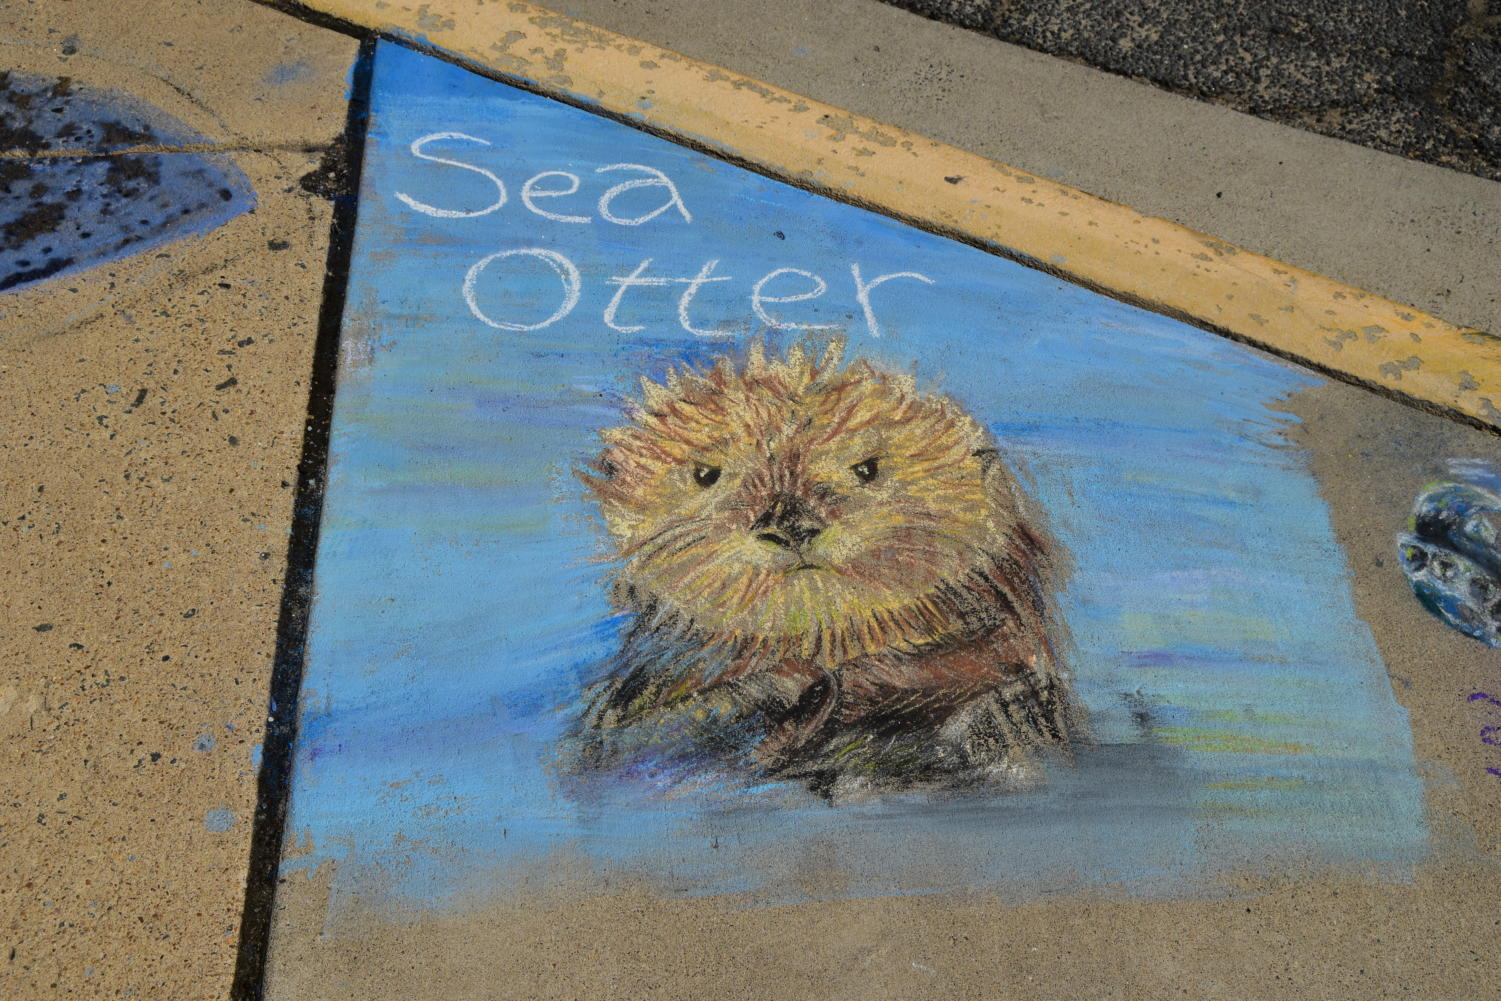 The endangered Sea Otter courtesy of an AP art student.